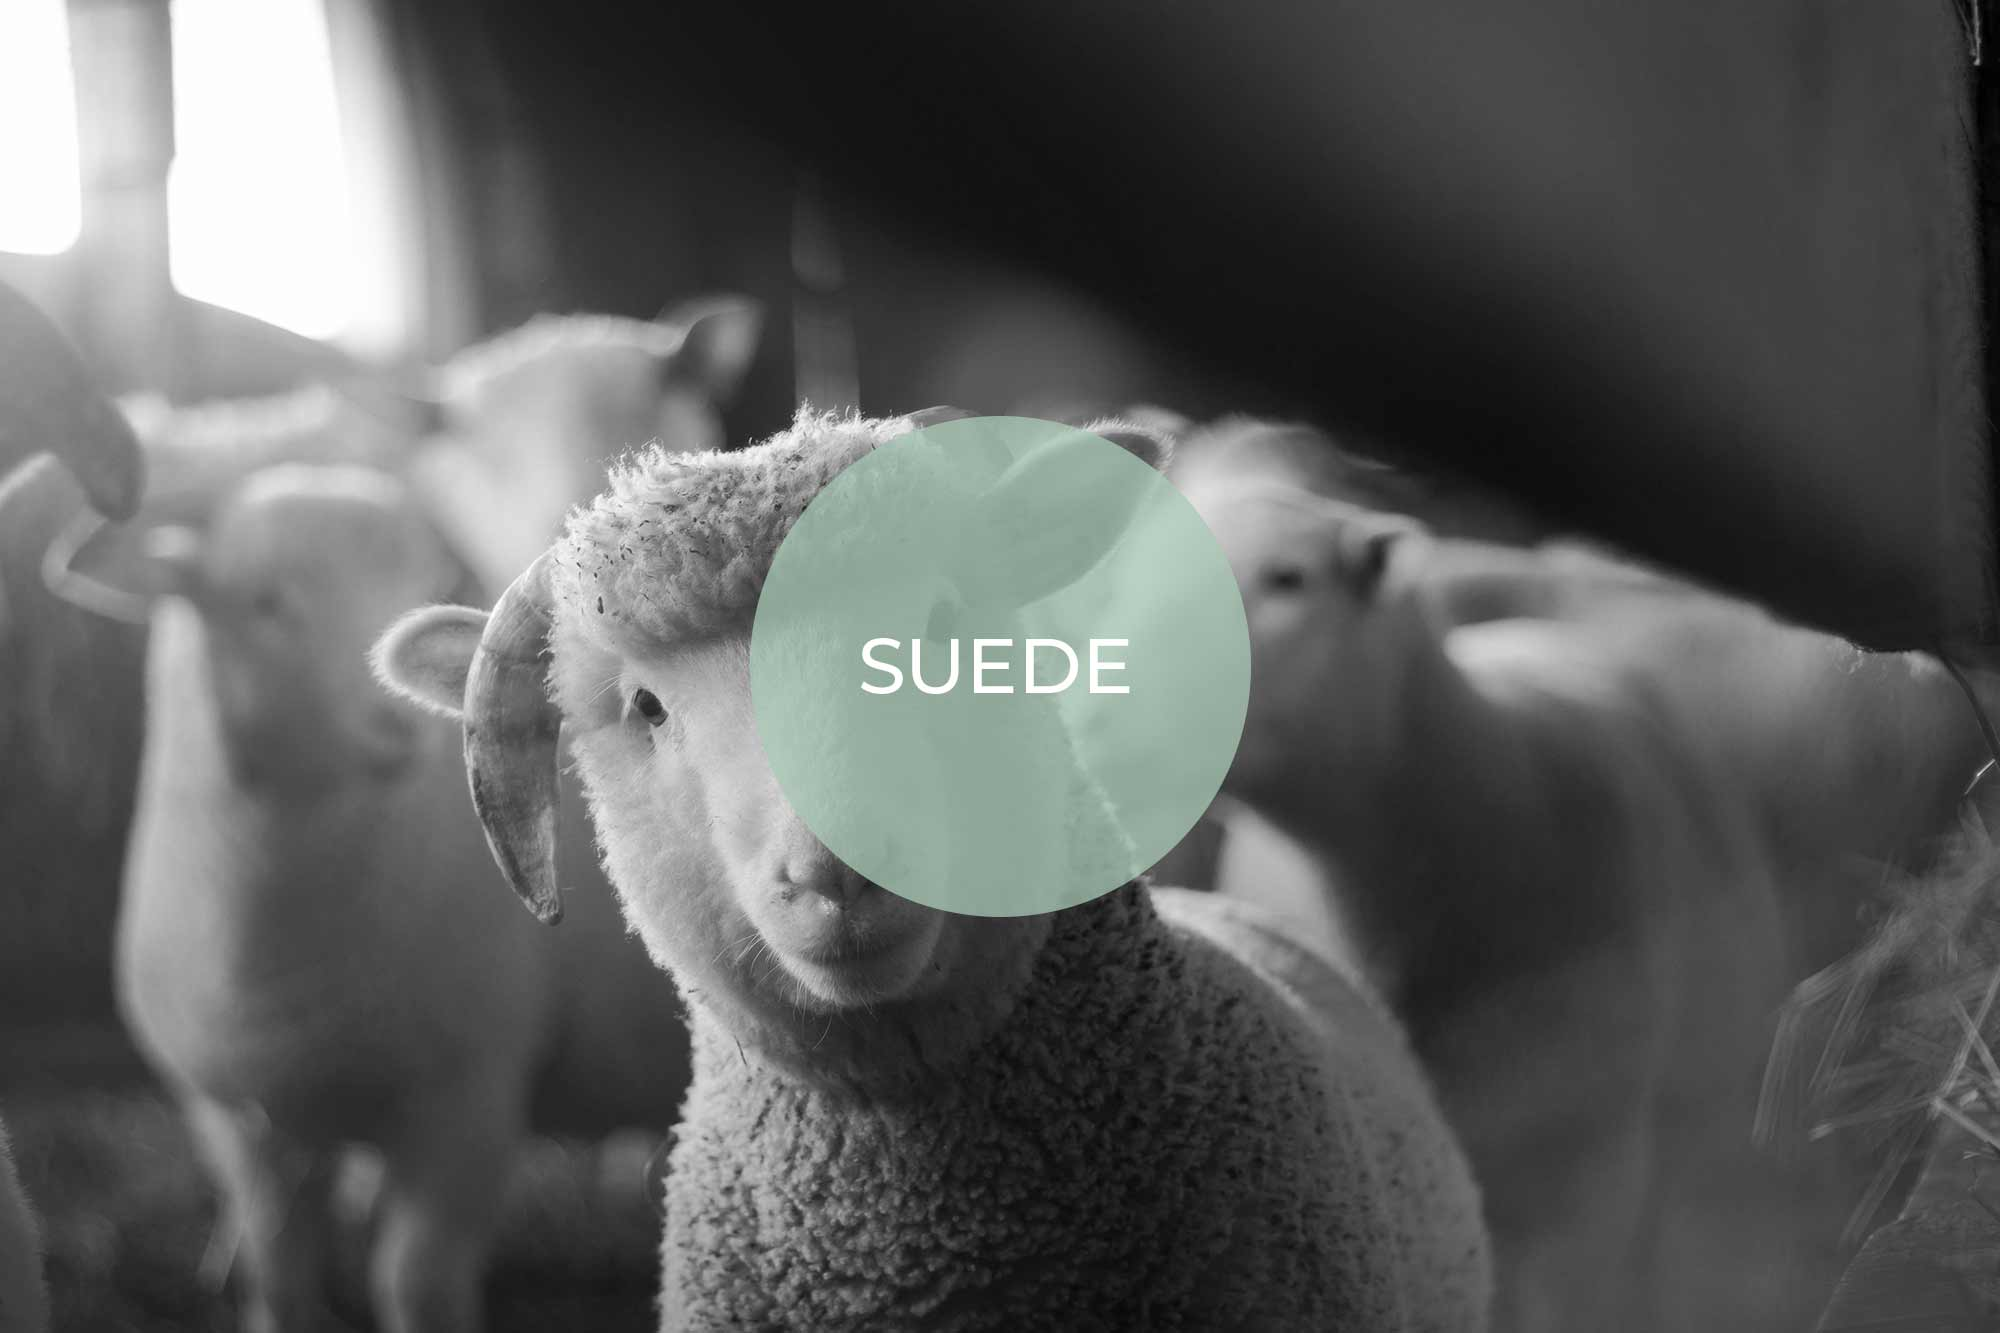 suede its vegan made